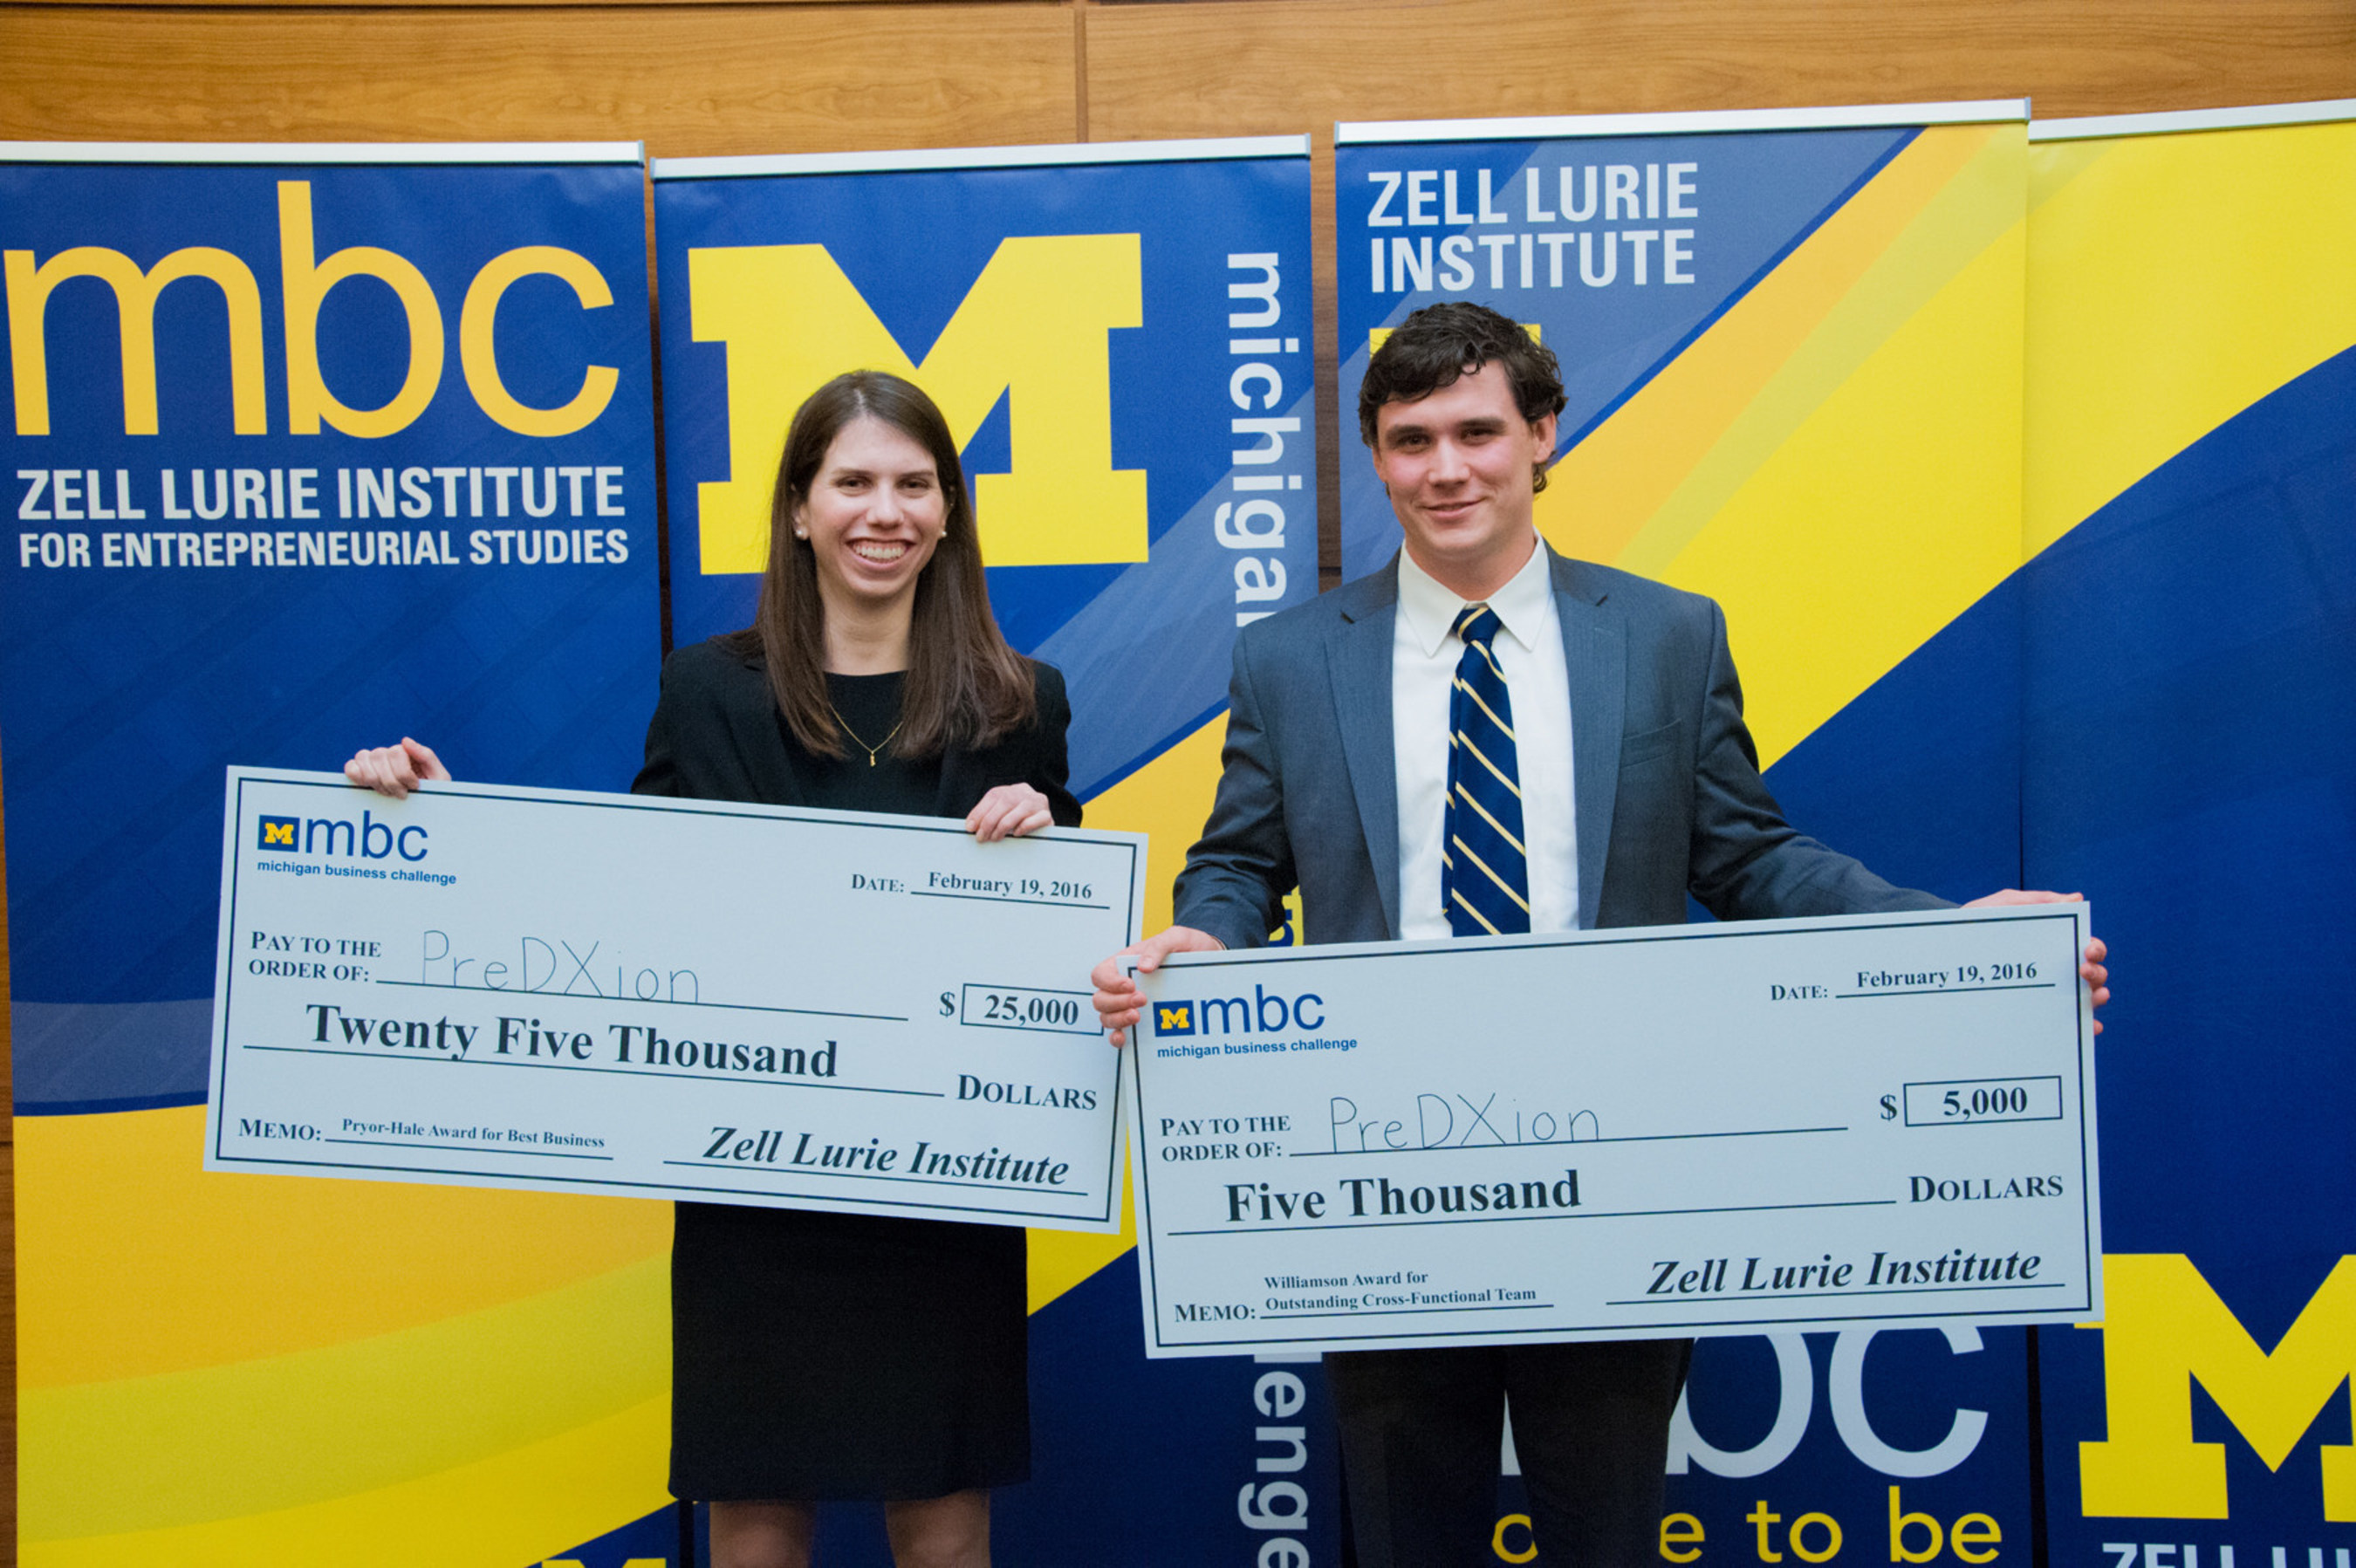 Caroline Landau (MBA '16) and Walker McHugh (MSE '17), winners of the Michigan Business Challenge for their most promising student startup PreDxion, which has created a groundbreaking, patent-pending diagnostic near-bedside device that rapidly determines correct medication in critical care and emergency situations.